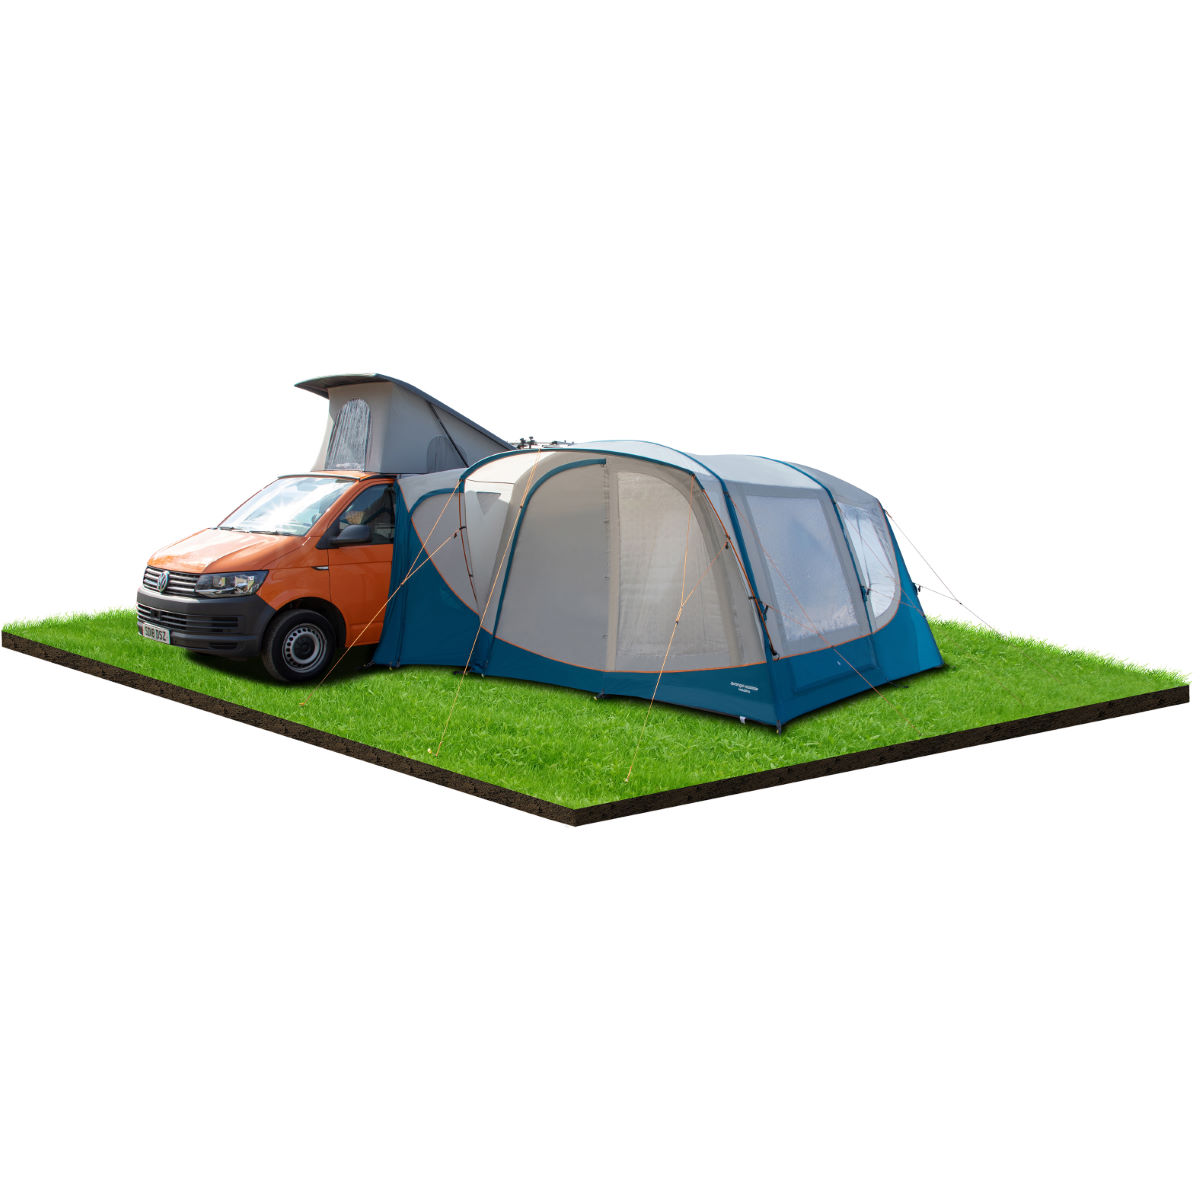 Vango Vango Magra Air VW Awning Blue One Size   Inners and Floors